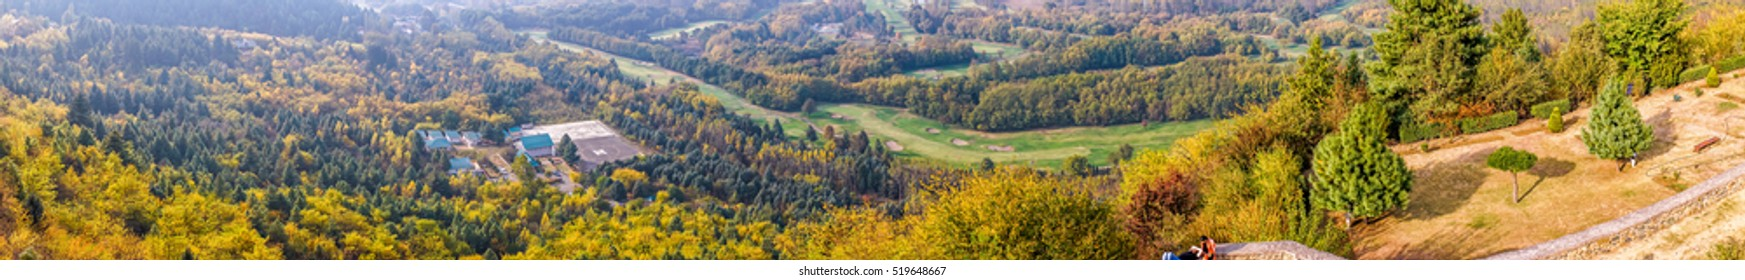 Panoramic view from above of park and hillside with autumn trees in Srinagar, Kashmir, India, in a blur background of a valley from afar